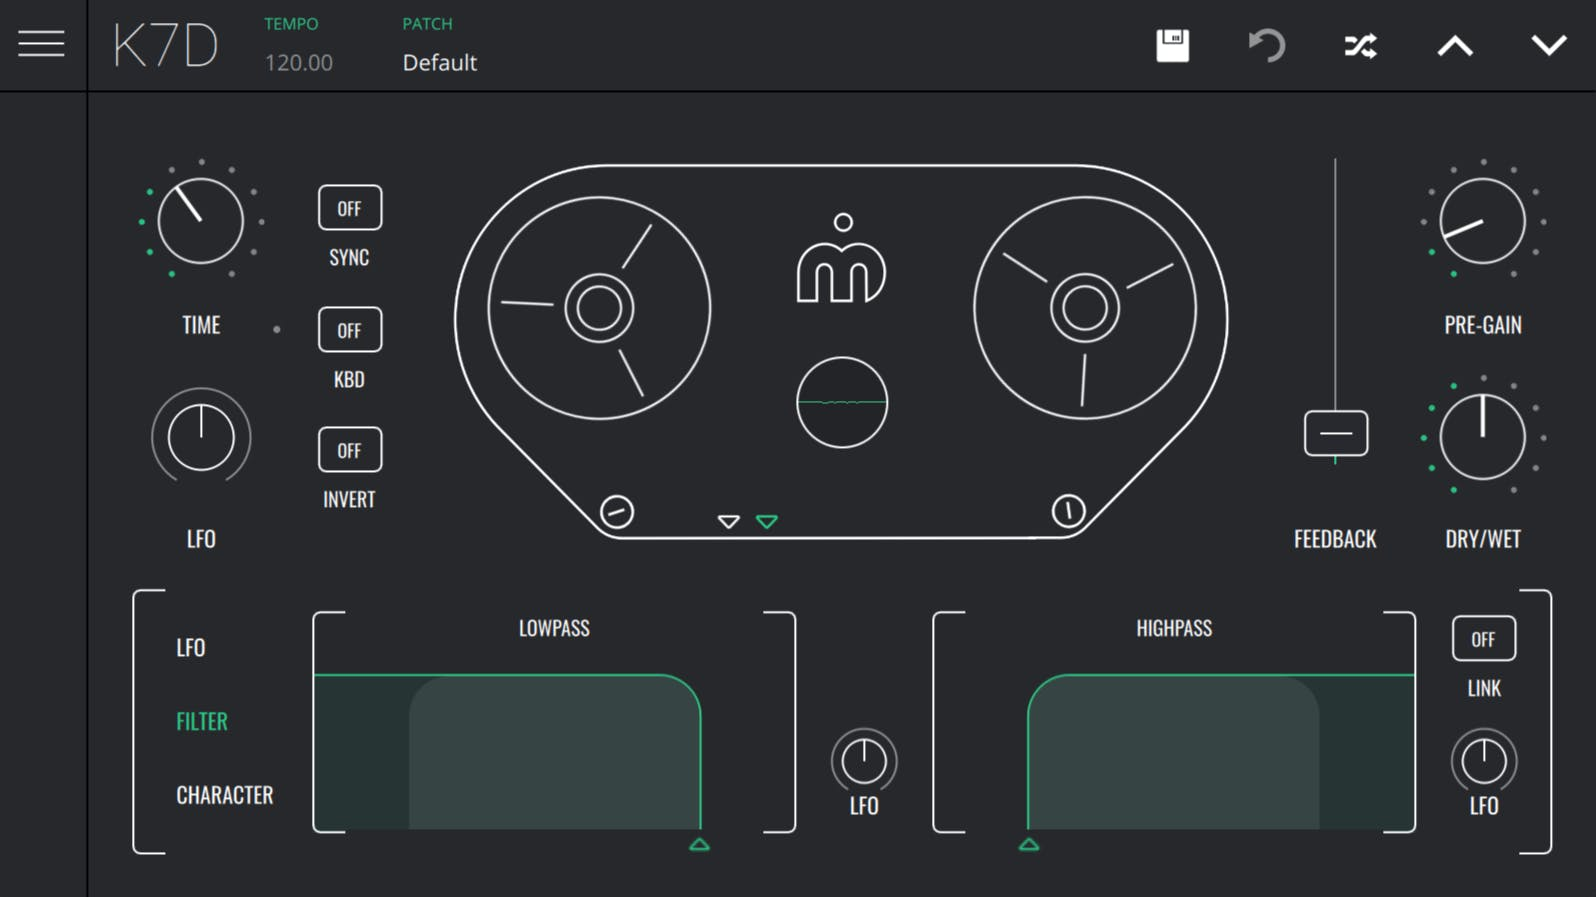 Overview of K7D - a versatile analogue sounding tape delay effect VST/AU plugin for Windows, MacOS X and iOS.